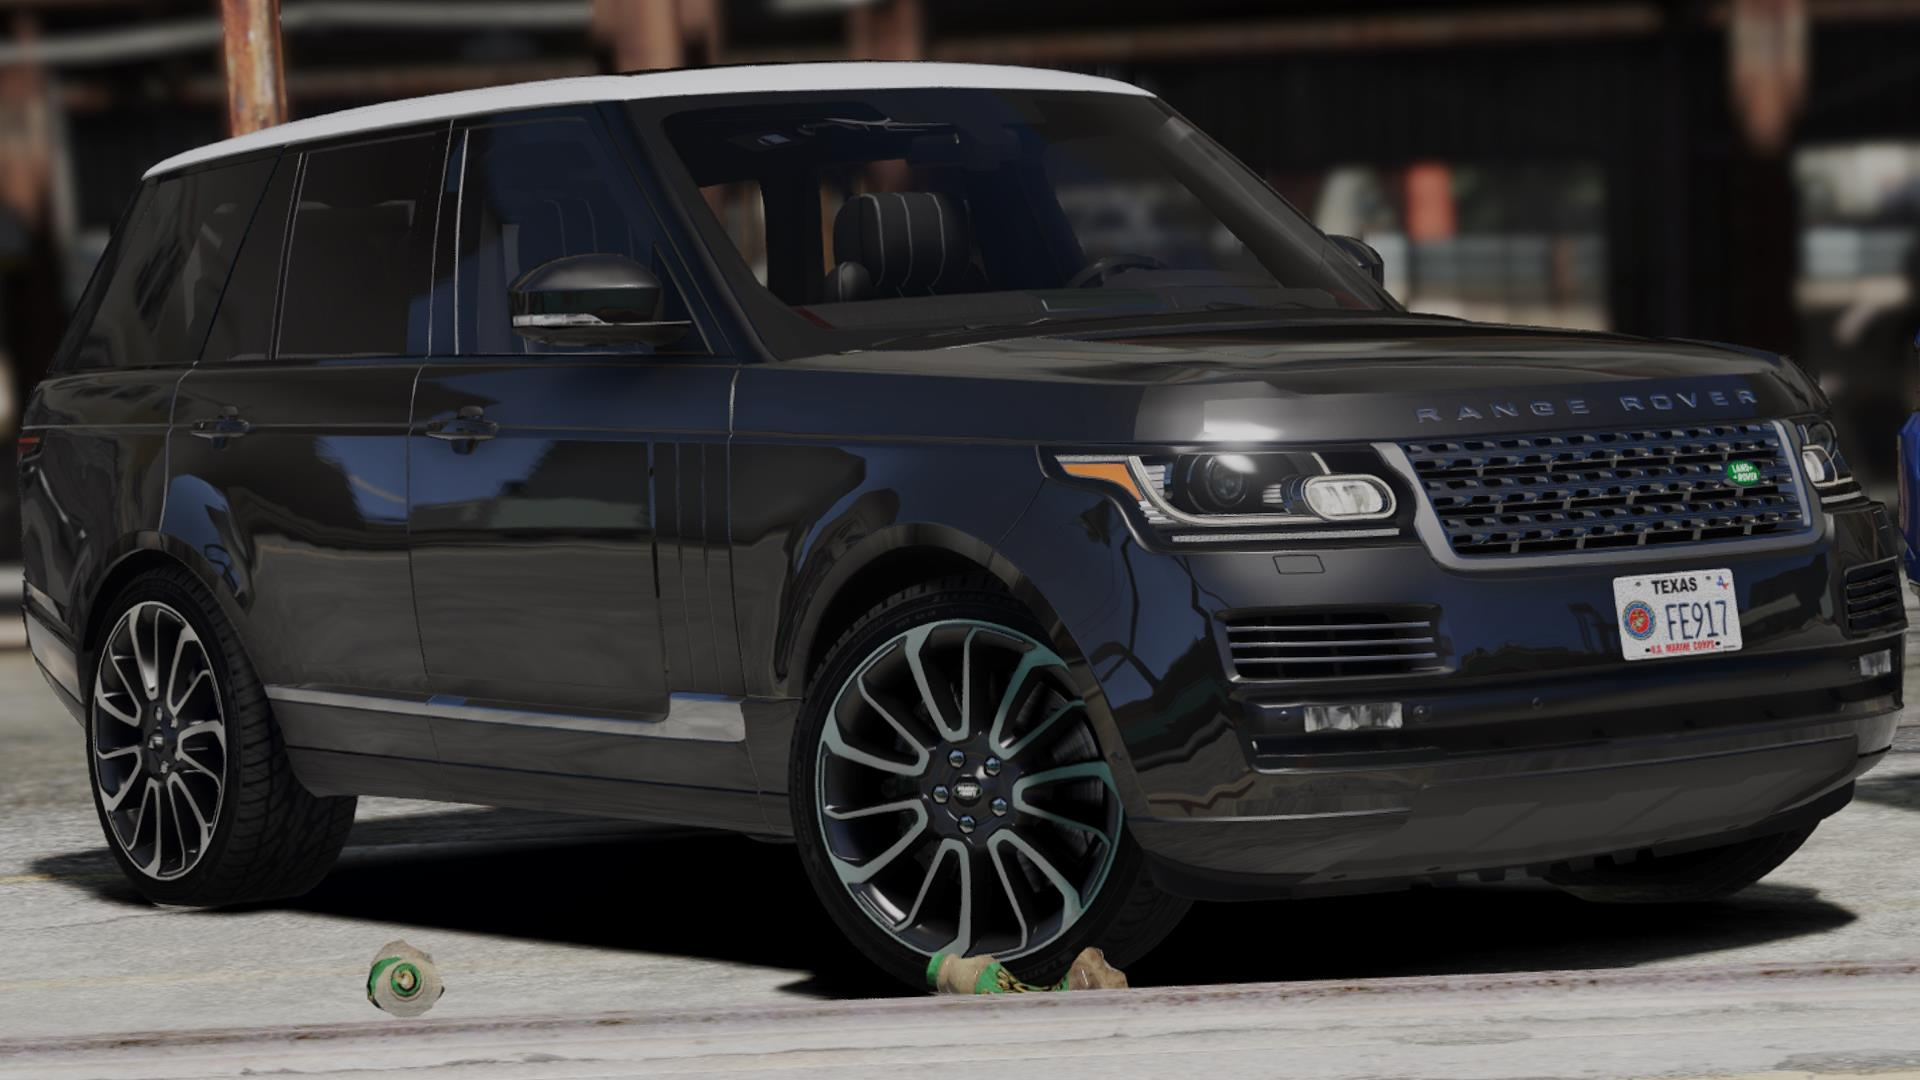 2014 Range Rover Vogue SC 3 0 V6 [Add on Replace] GTA5 Mods